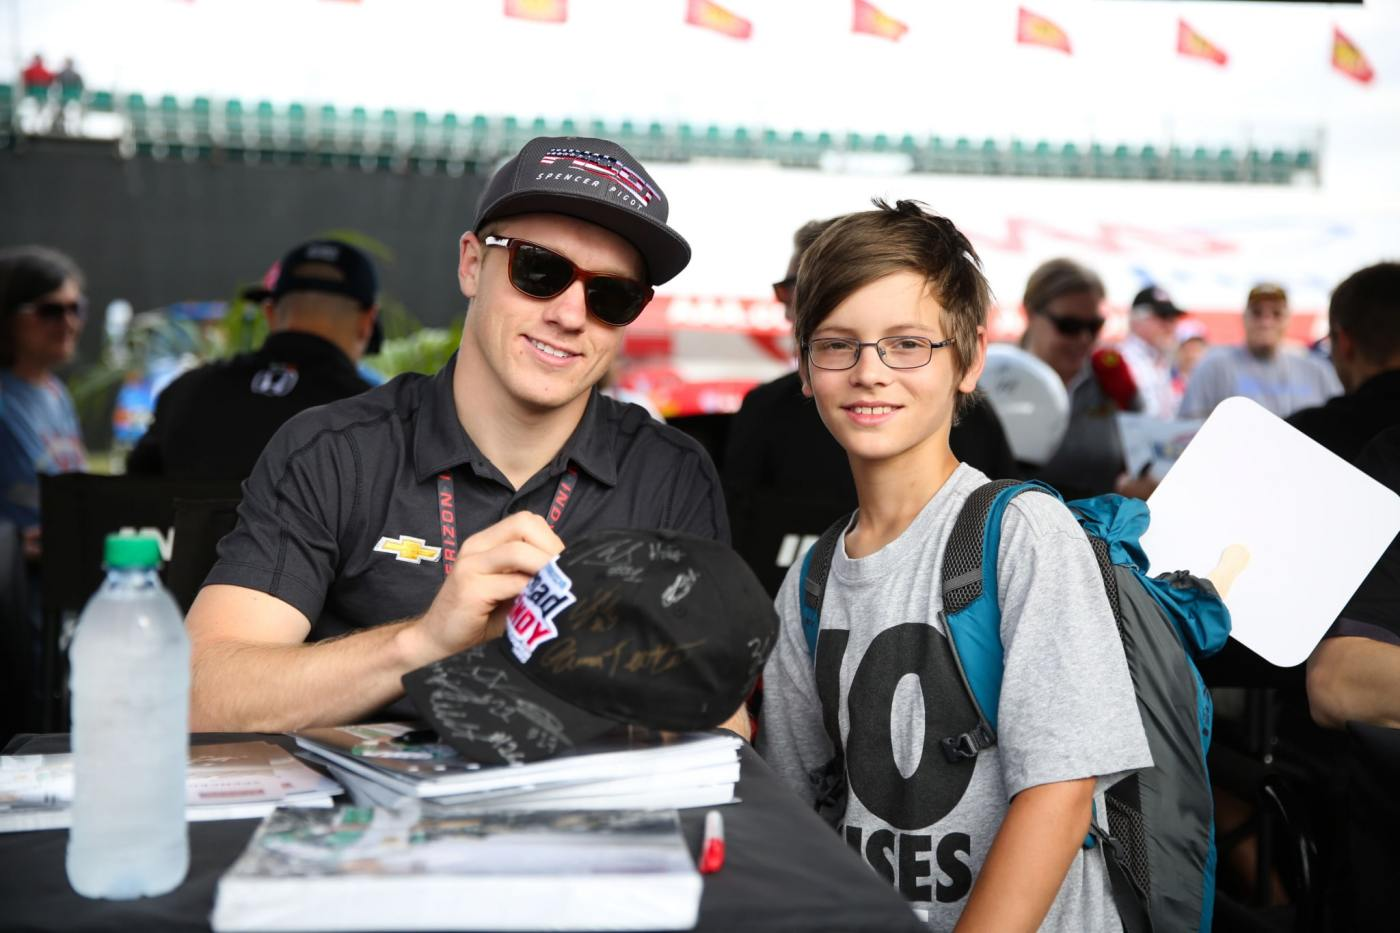 There will be autograph sessions with racers at certain times throughout the weekend at the Surgere Fan Zone. (Photo submitted)